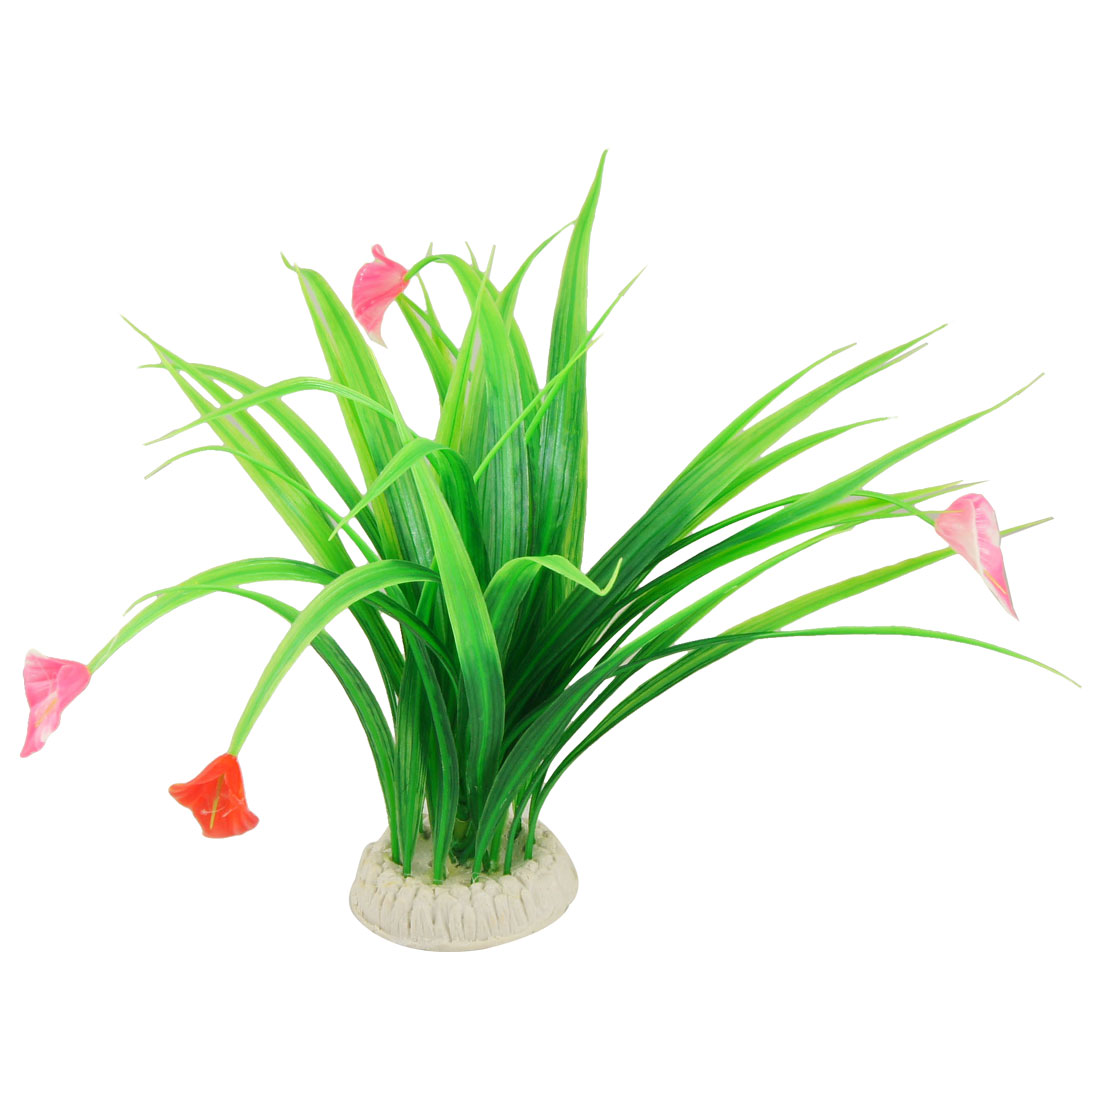 Fish Tank Plastic Green Leaves Red Flowers Grass Plants for Aquarium